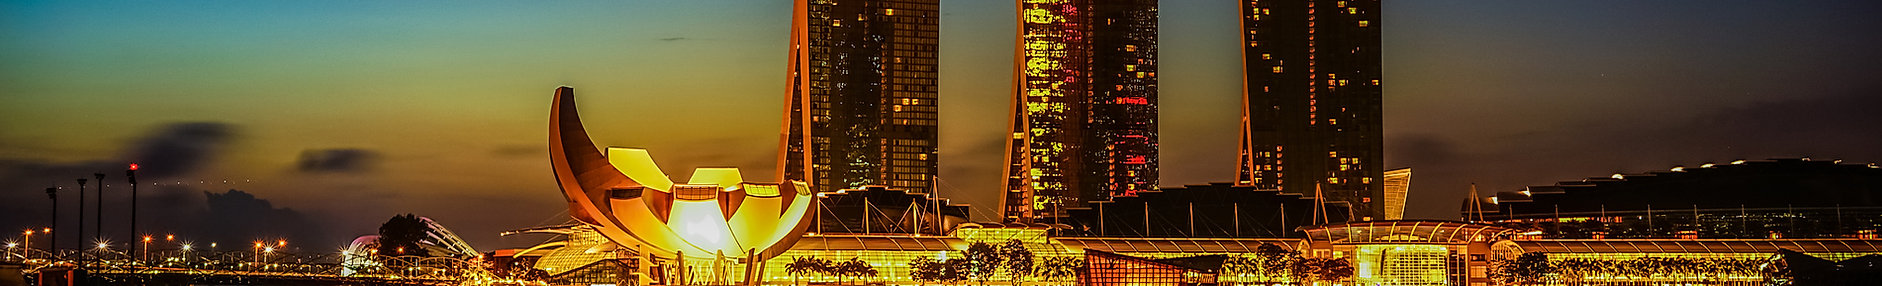 Singapore Backdrop views.jpg